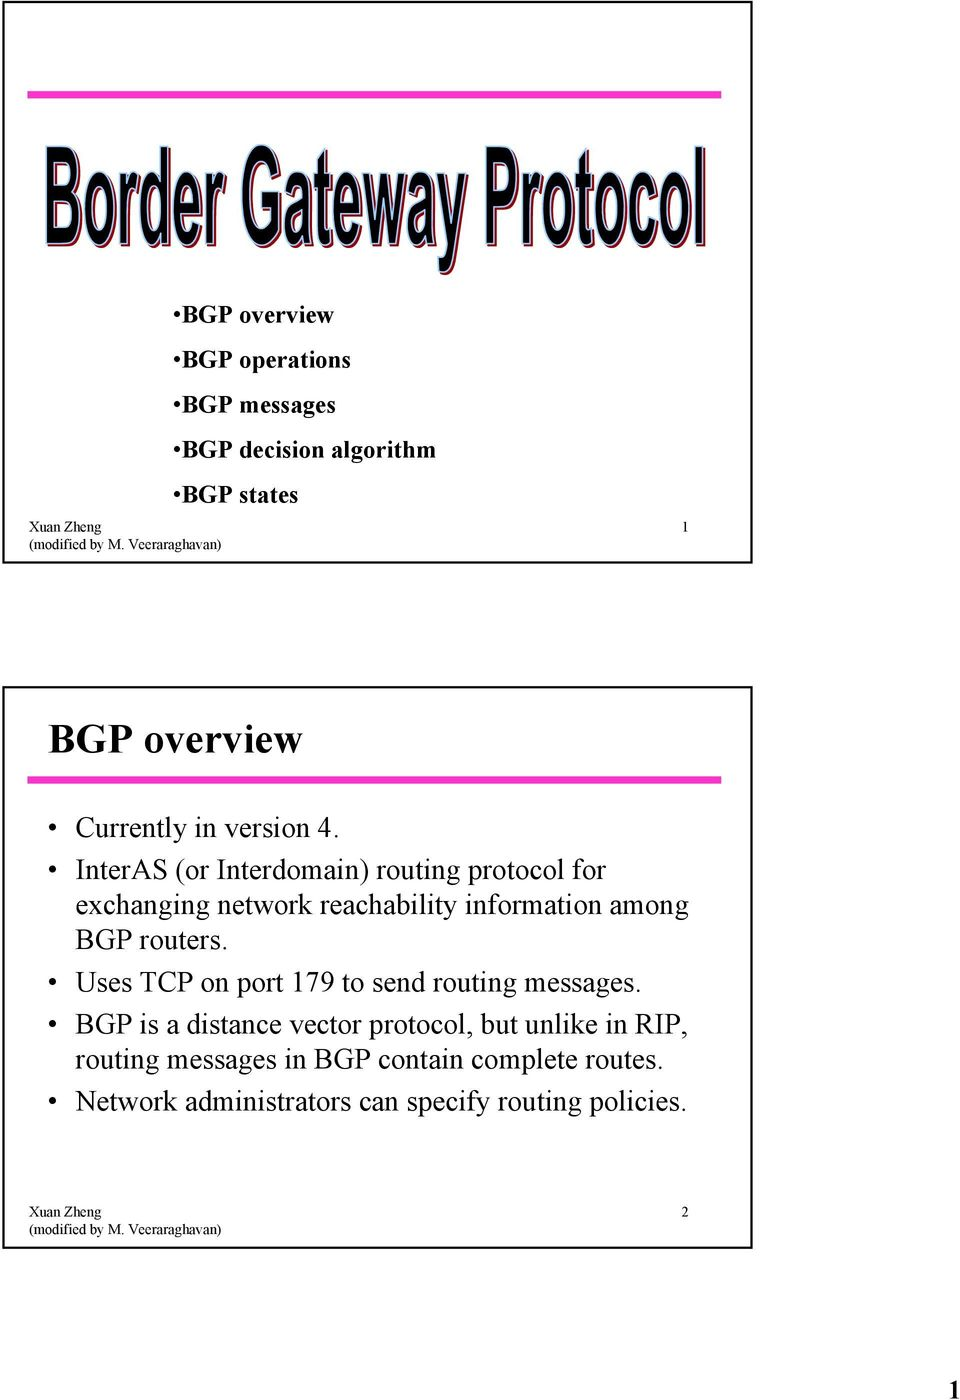 InterAS (or Interdomain) routing protocol for exchanging network reachability information among BGP routers.